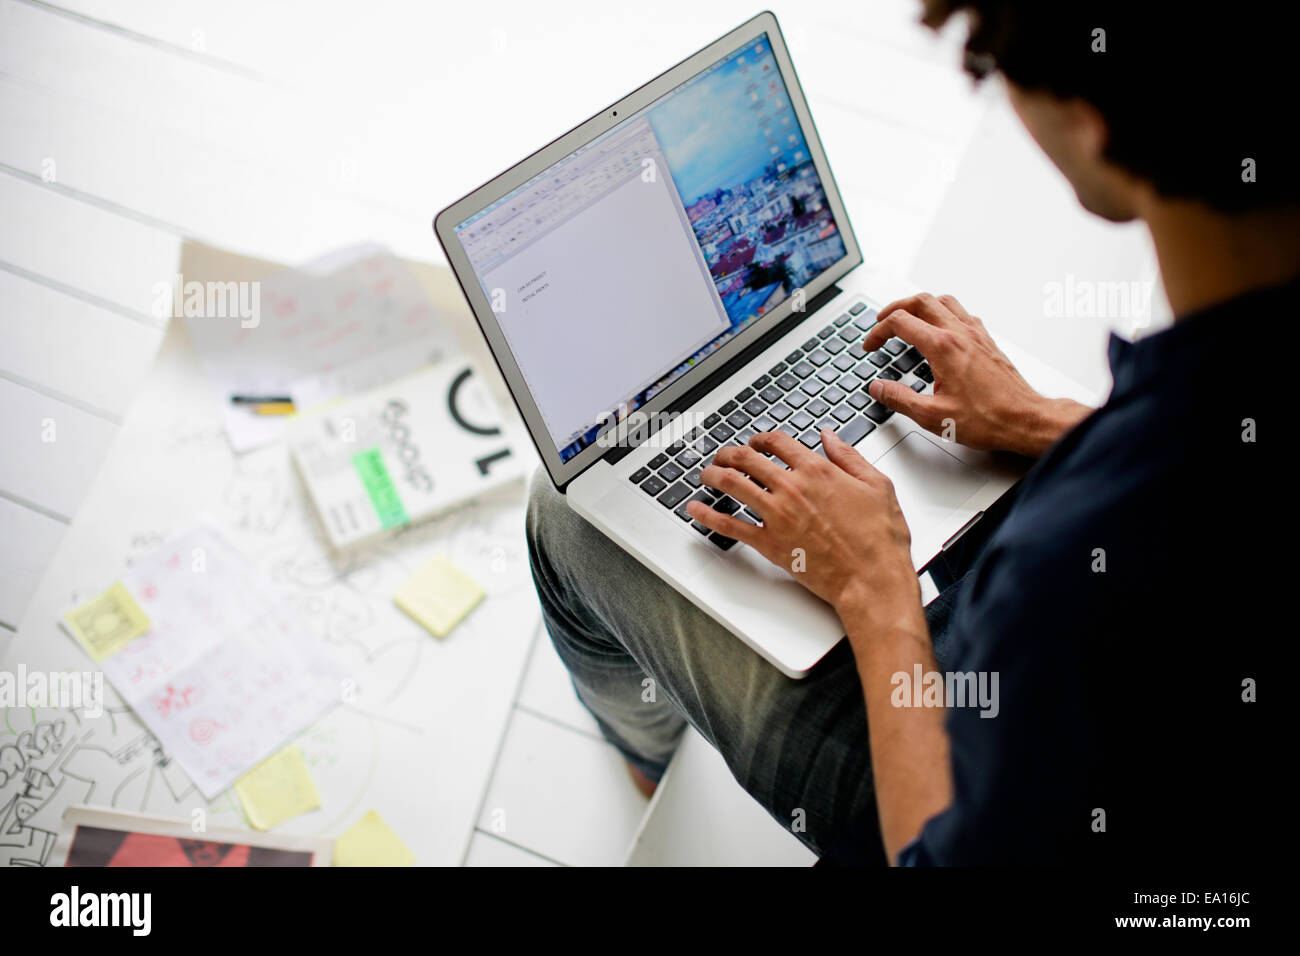 Graphic Designer using laptop Photo Stock